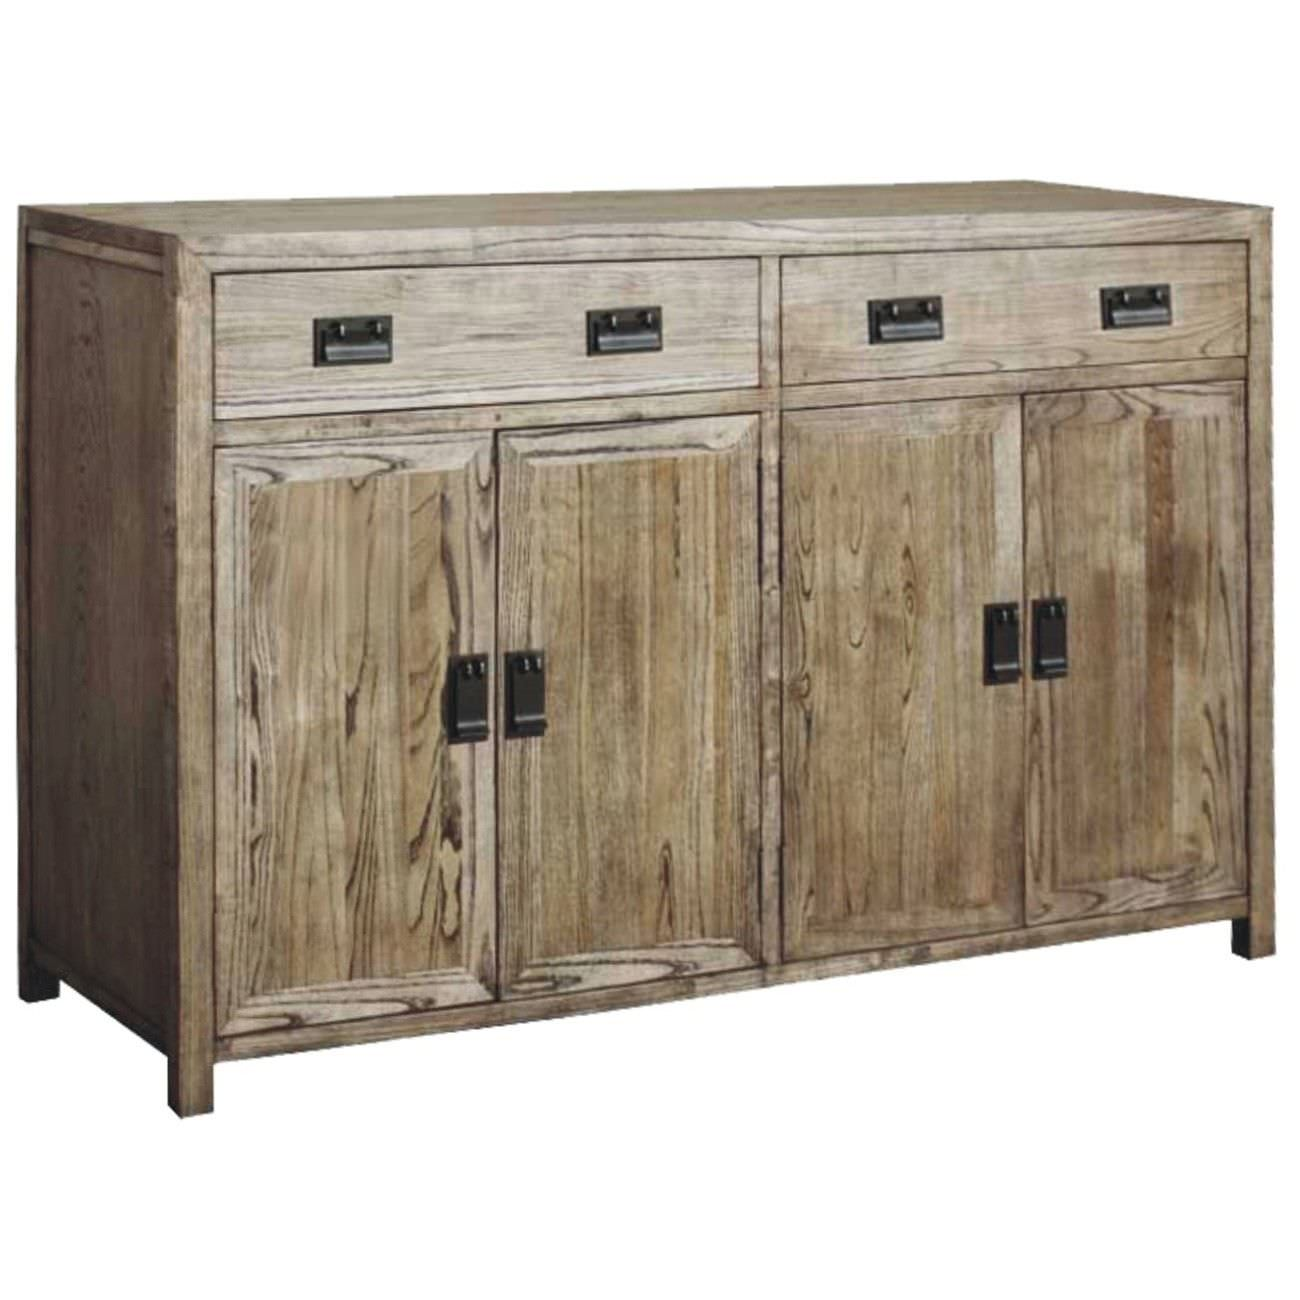 Sherwood Solid Oak Timber 4 Door 2 Drawer 180cm Sideboard